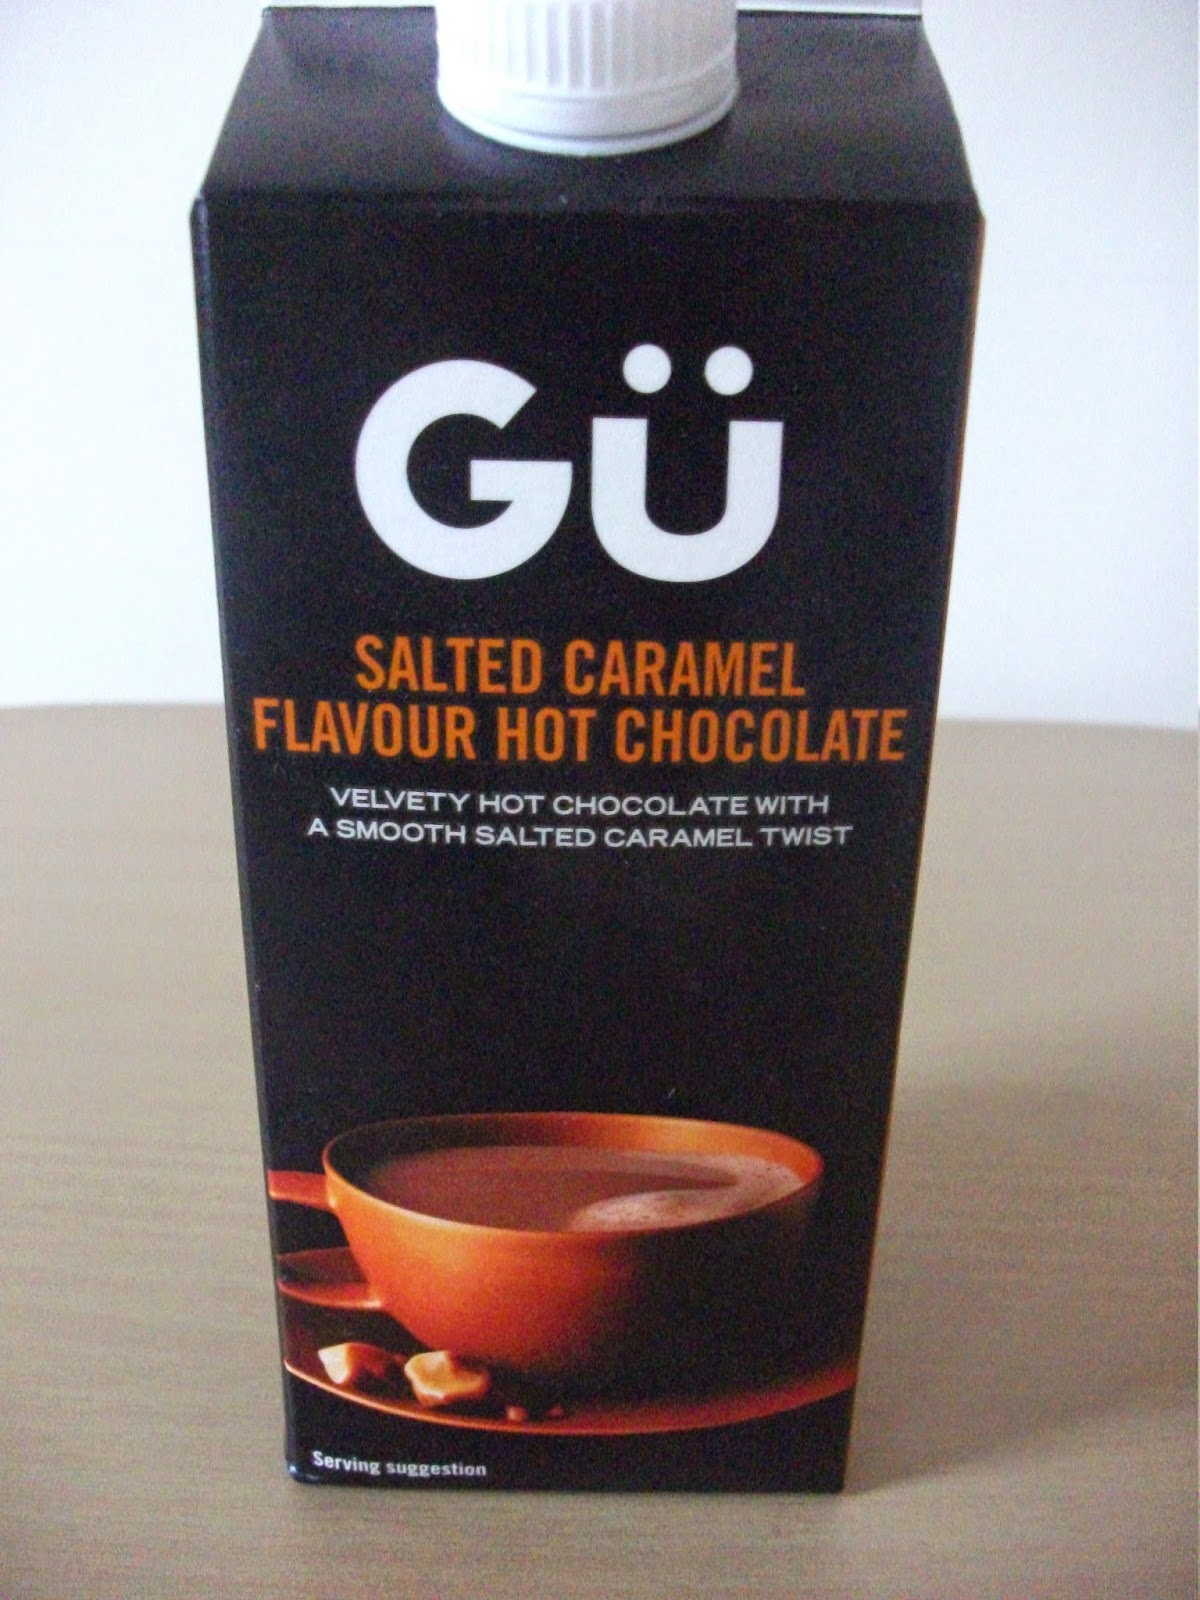 Gu Salted Caramel Hot Chocolate Review